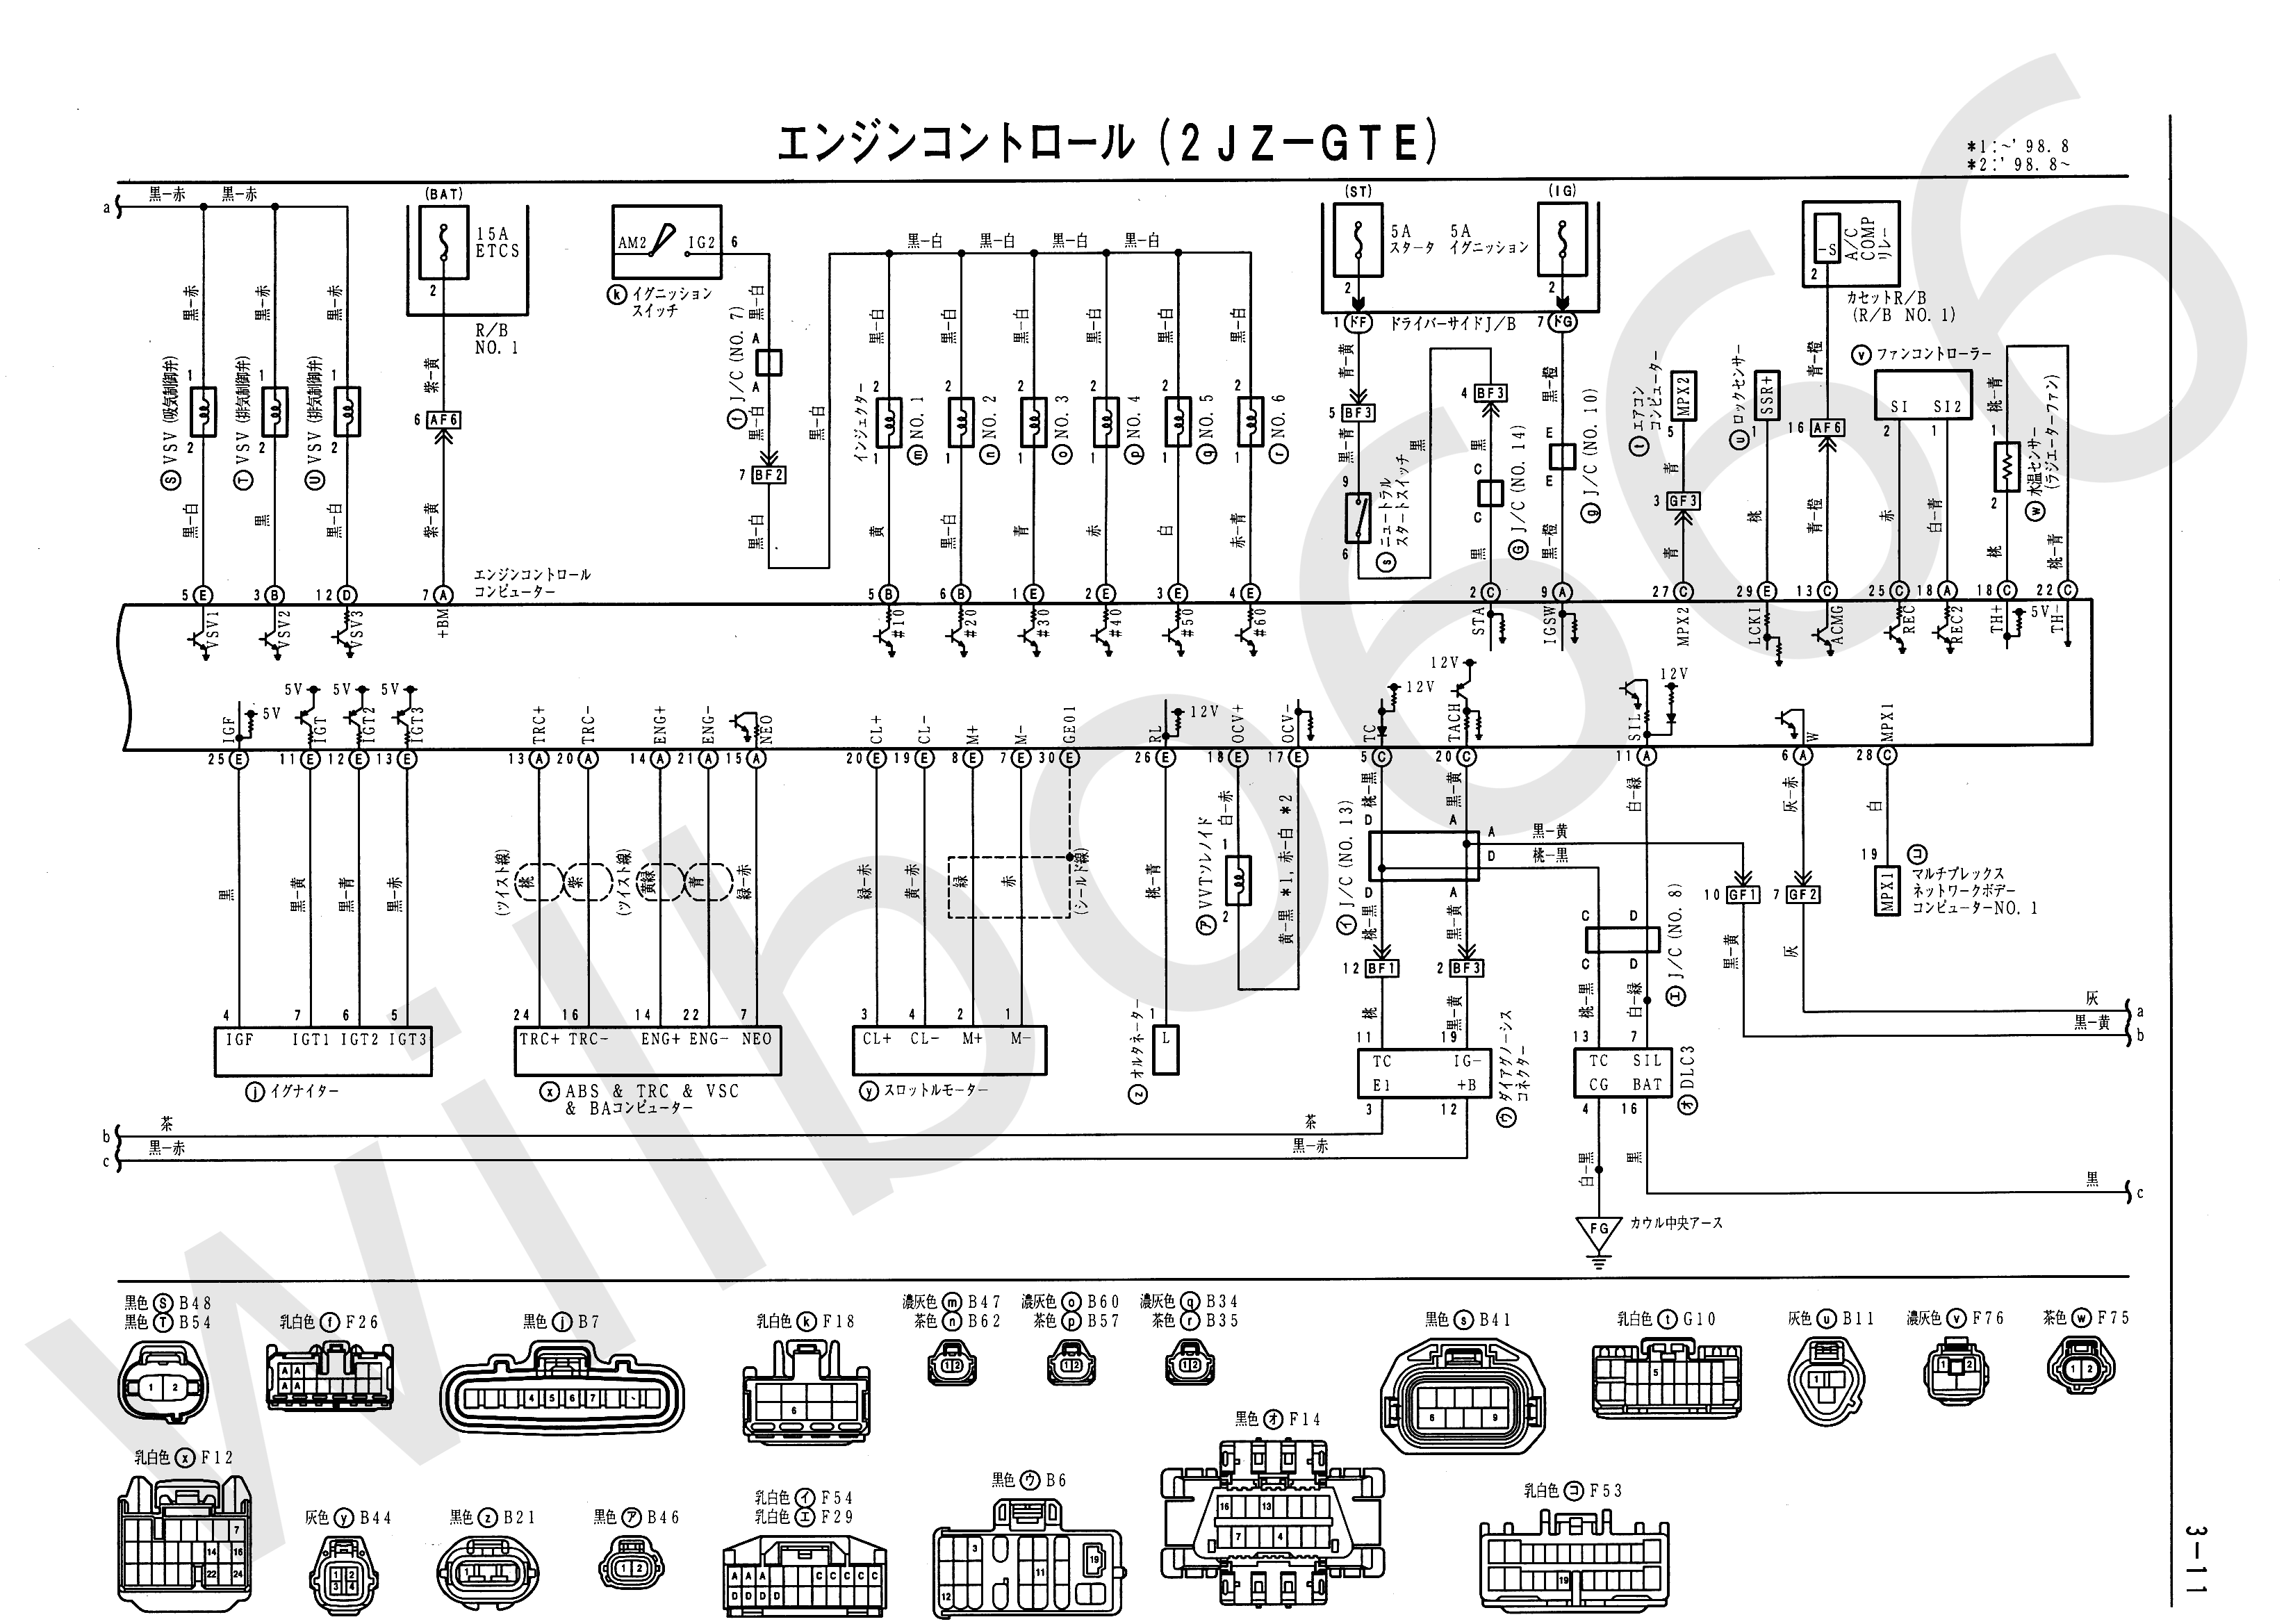 2jz Engine Diagram 300zx Wiring Harness Toyota Aristo Jzs161 Library Rh 49 Hermandadredencion Eu Motor